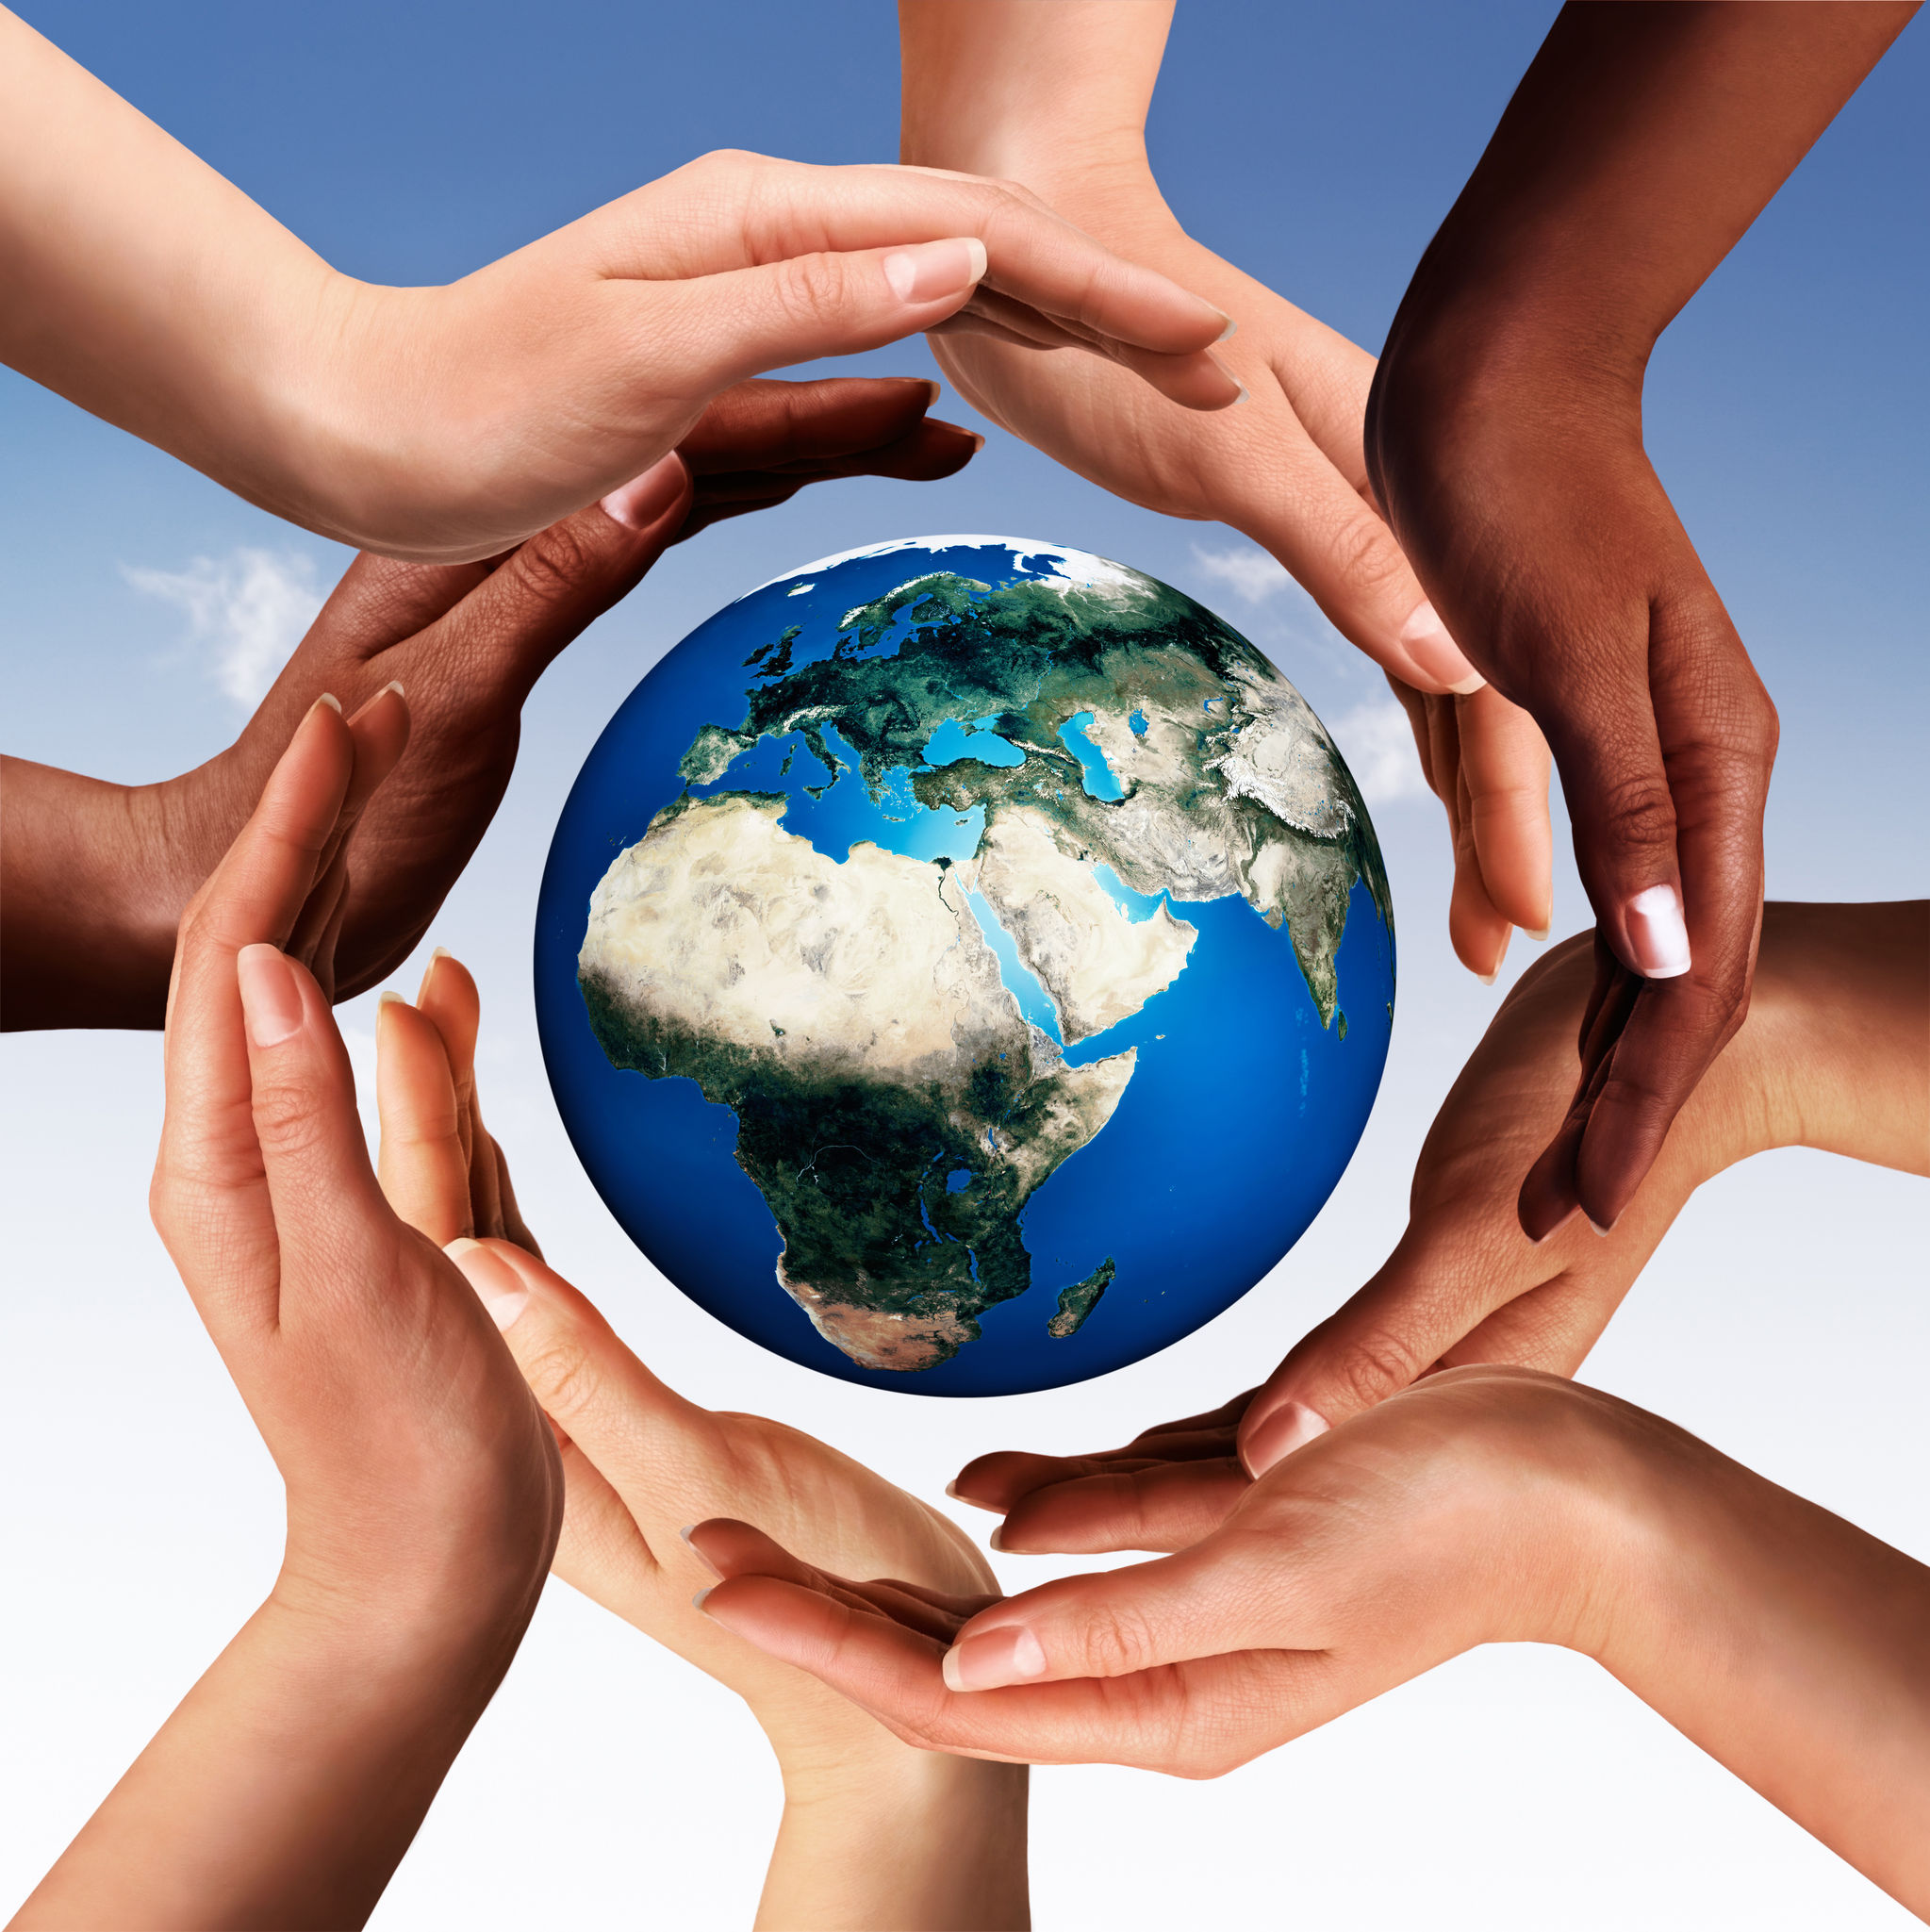 40110971 - conceptual peace and cultural diversity symbol of multiracial hands making a circle together around the world the earth globe on blue sky background